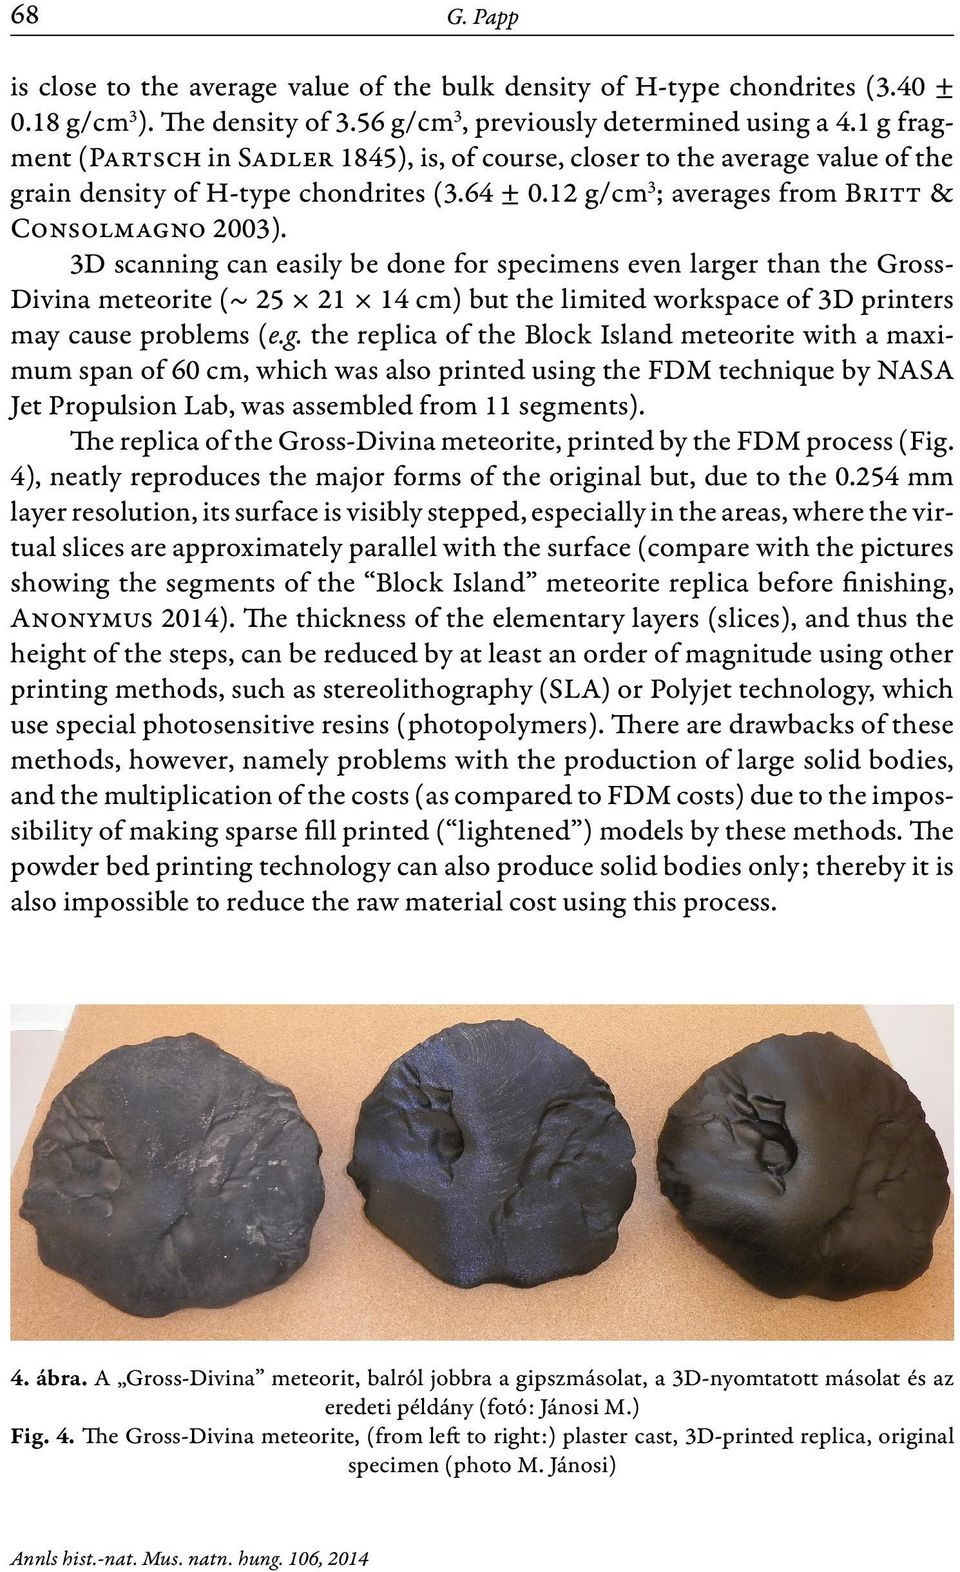 3D scanning can easily be done for specimens even larger than the Gross- Divina meteorite (~ 25 21 14 cm) but the limited workspace of 3D printers may cause problems (e.g. the replica of the Block Island meteorite with a maximum span of 60 cm, which was also printed using the FDM technique by NASA Jet Propulsion Lab, was assembled from 11 segments).